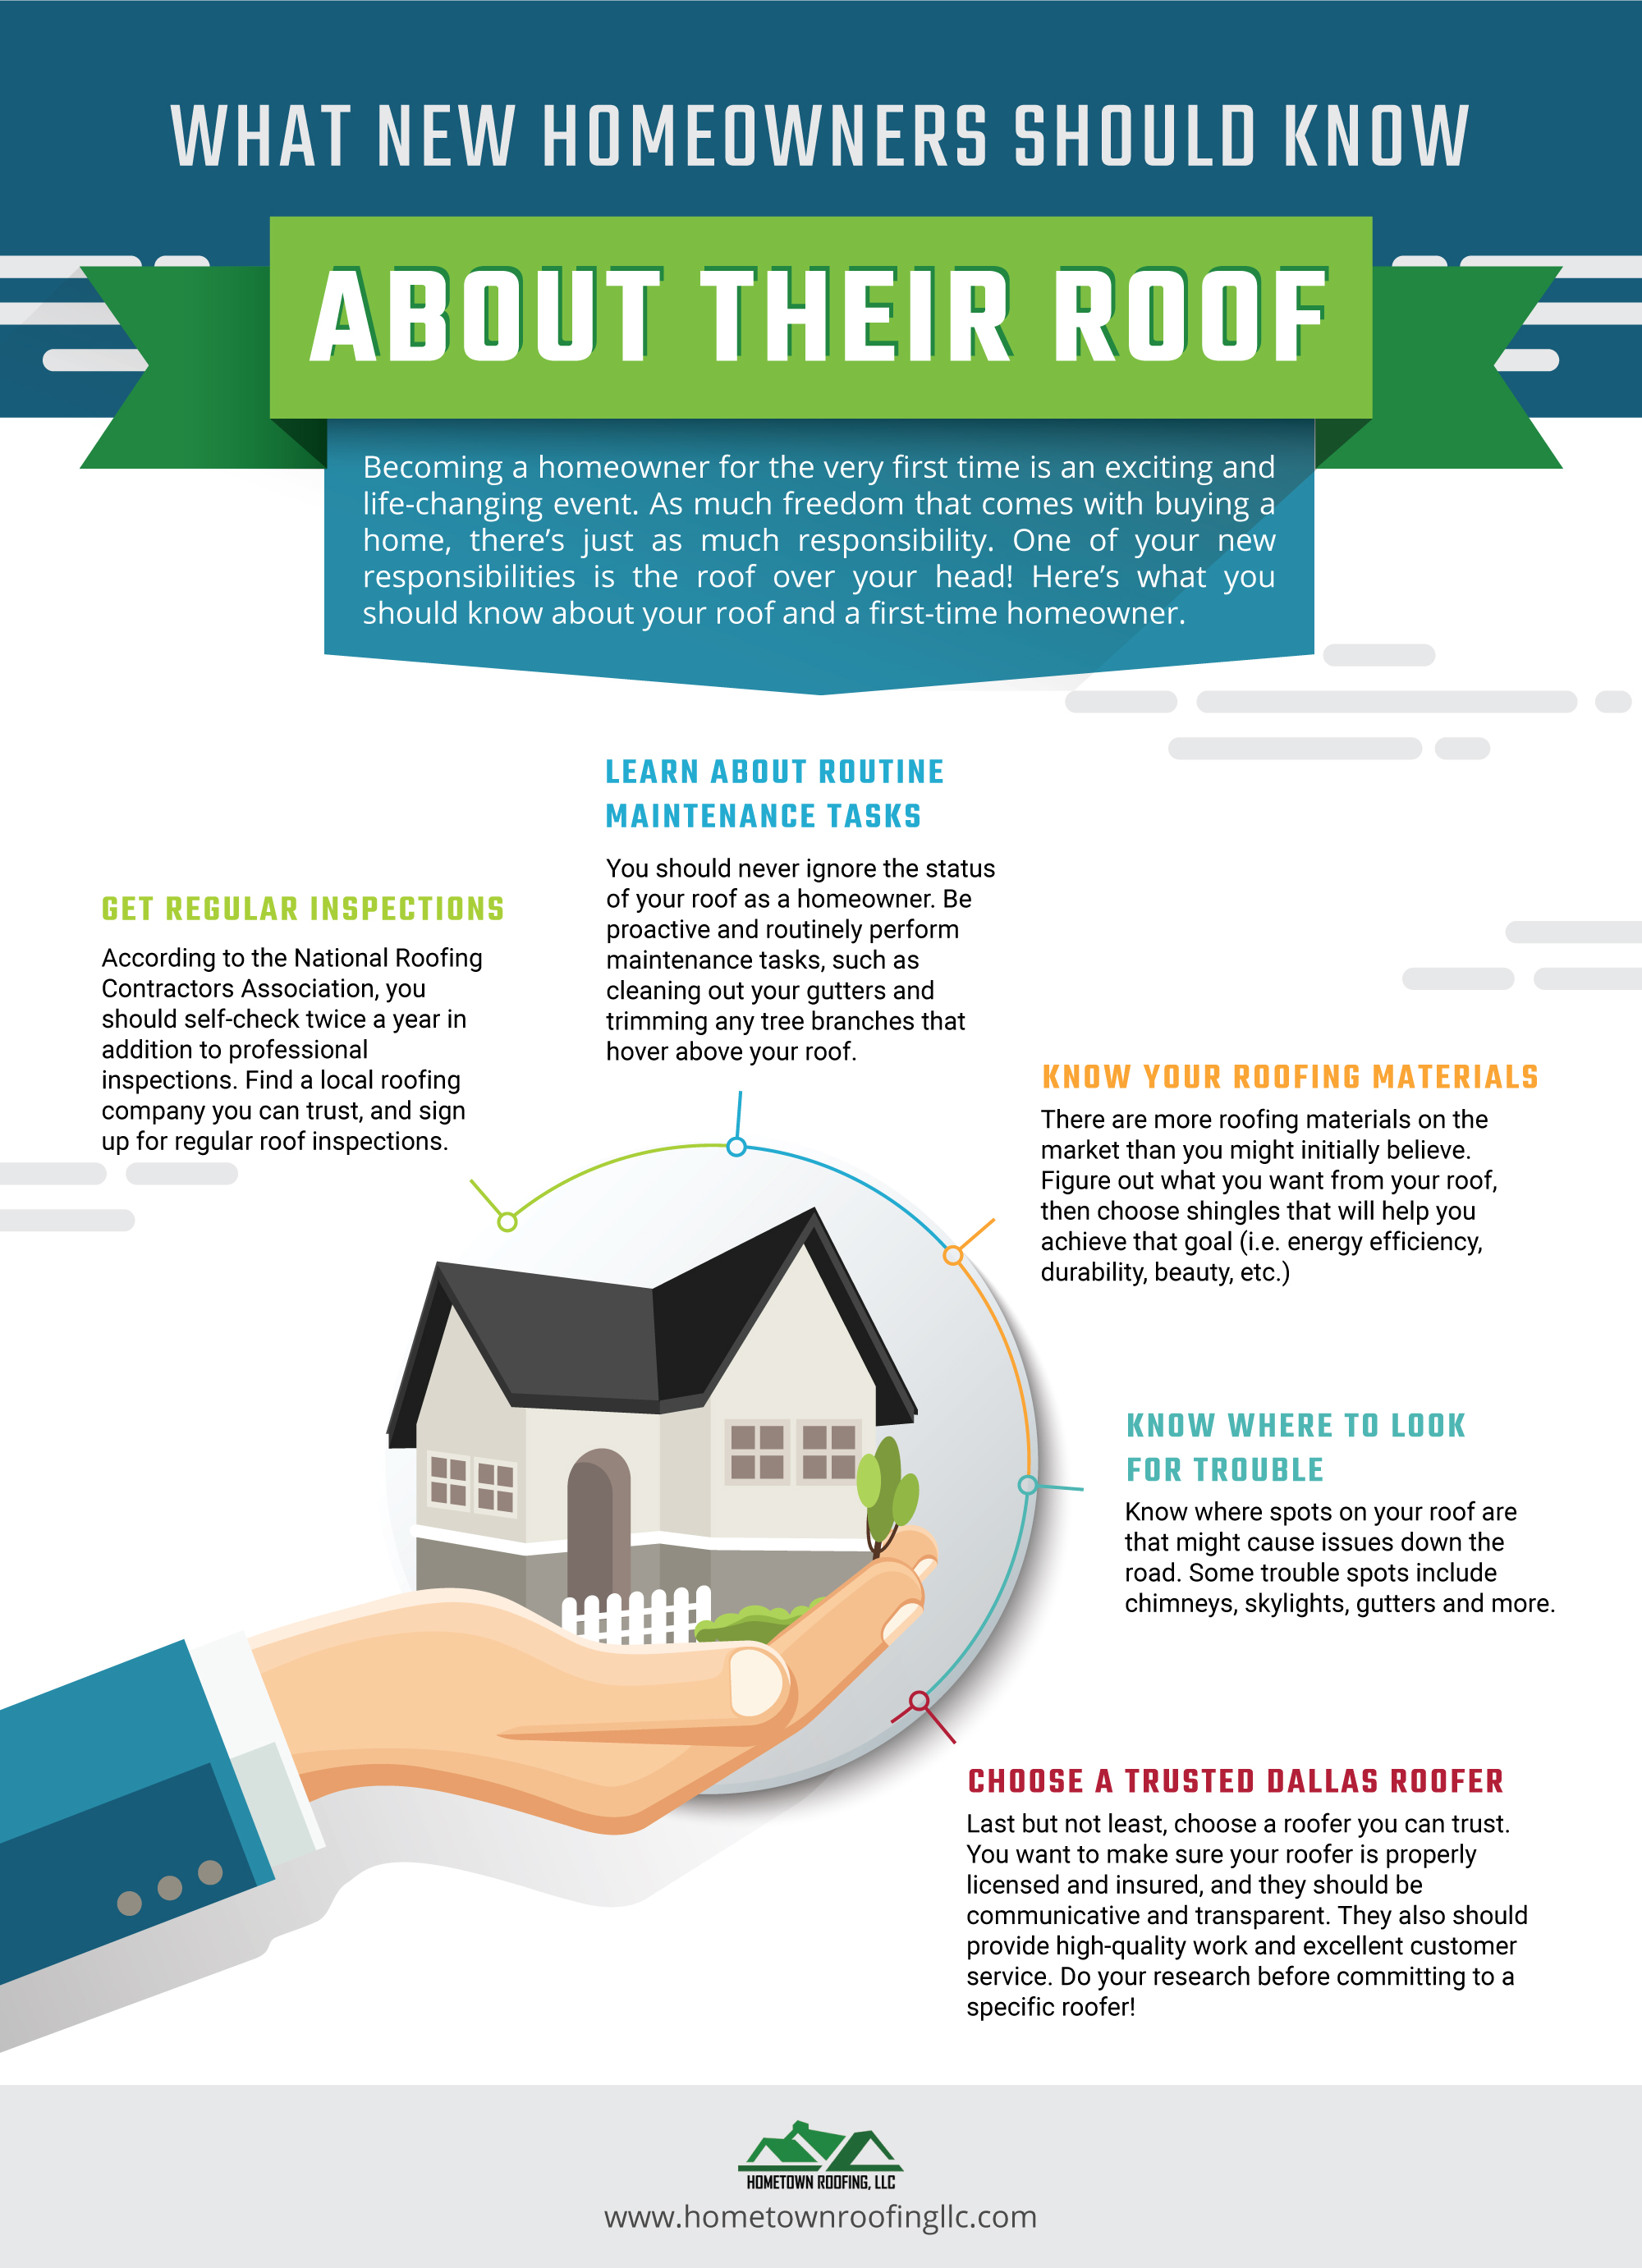 Common Issues That Home Inspectors Typically Look For On Your Roof